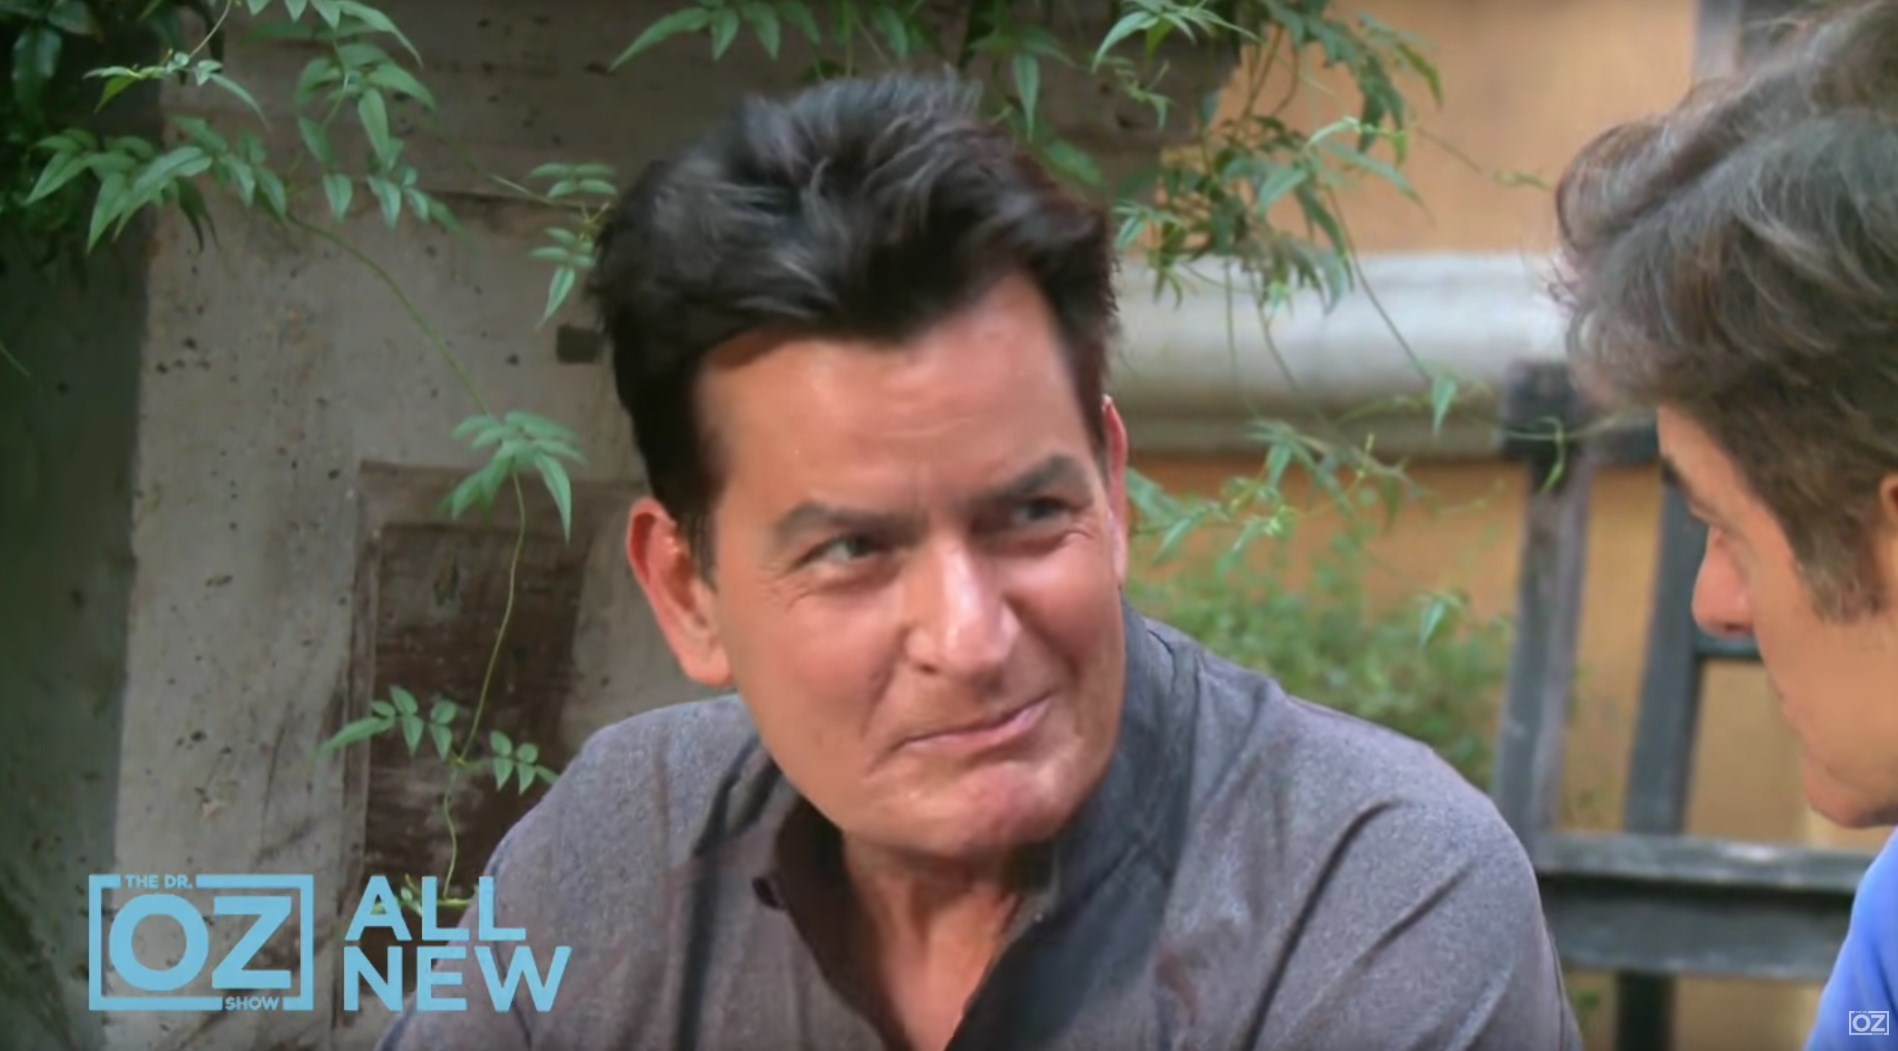 charlie sheen dr oz